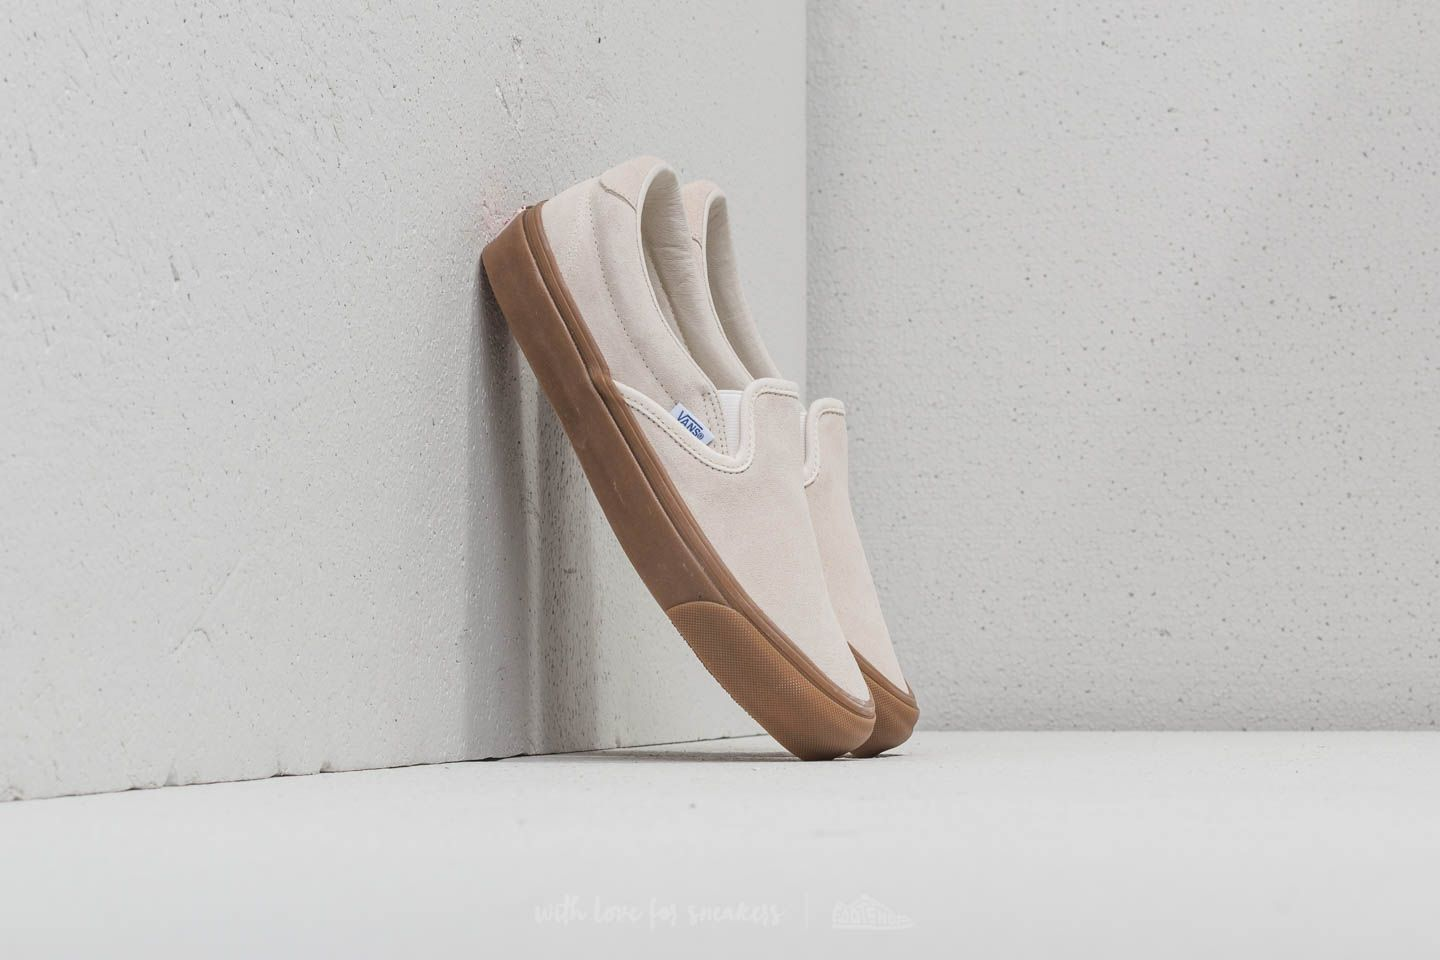 Vans OG Slip-On 59 LX (Suede) Sugar Swizzle